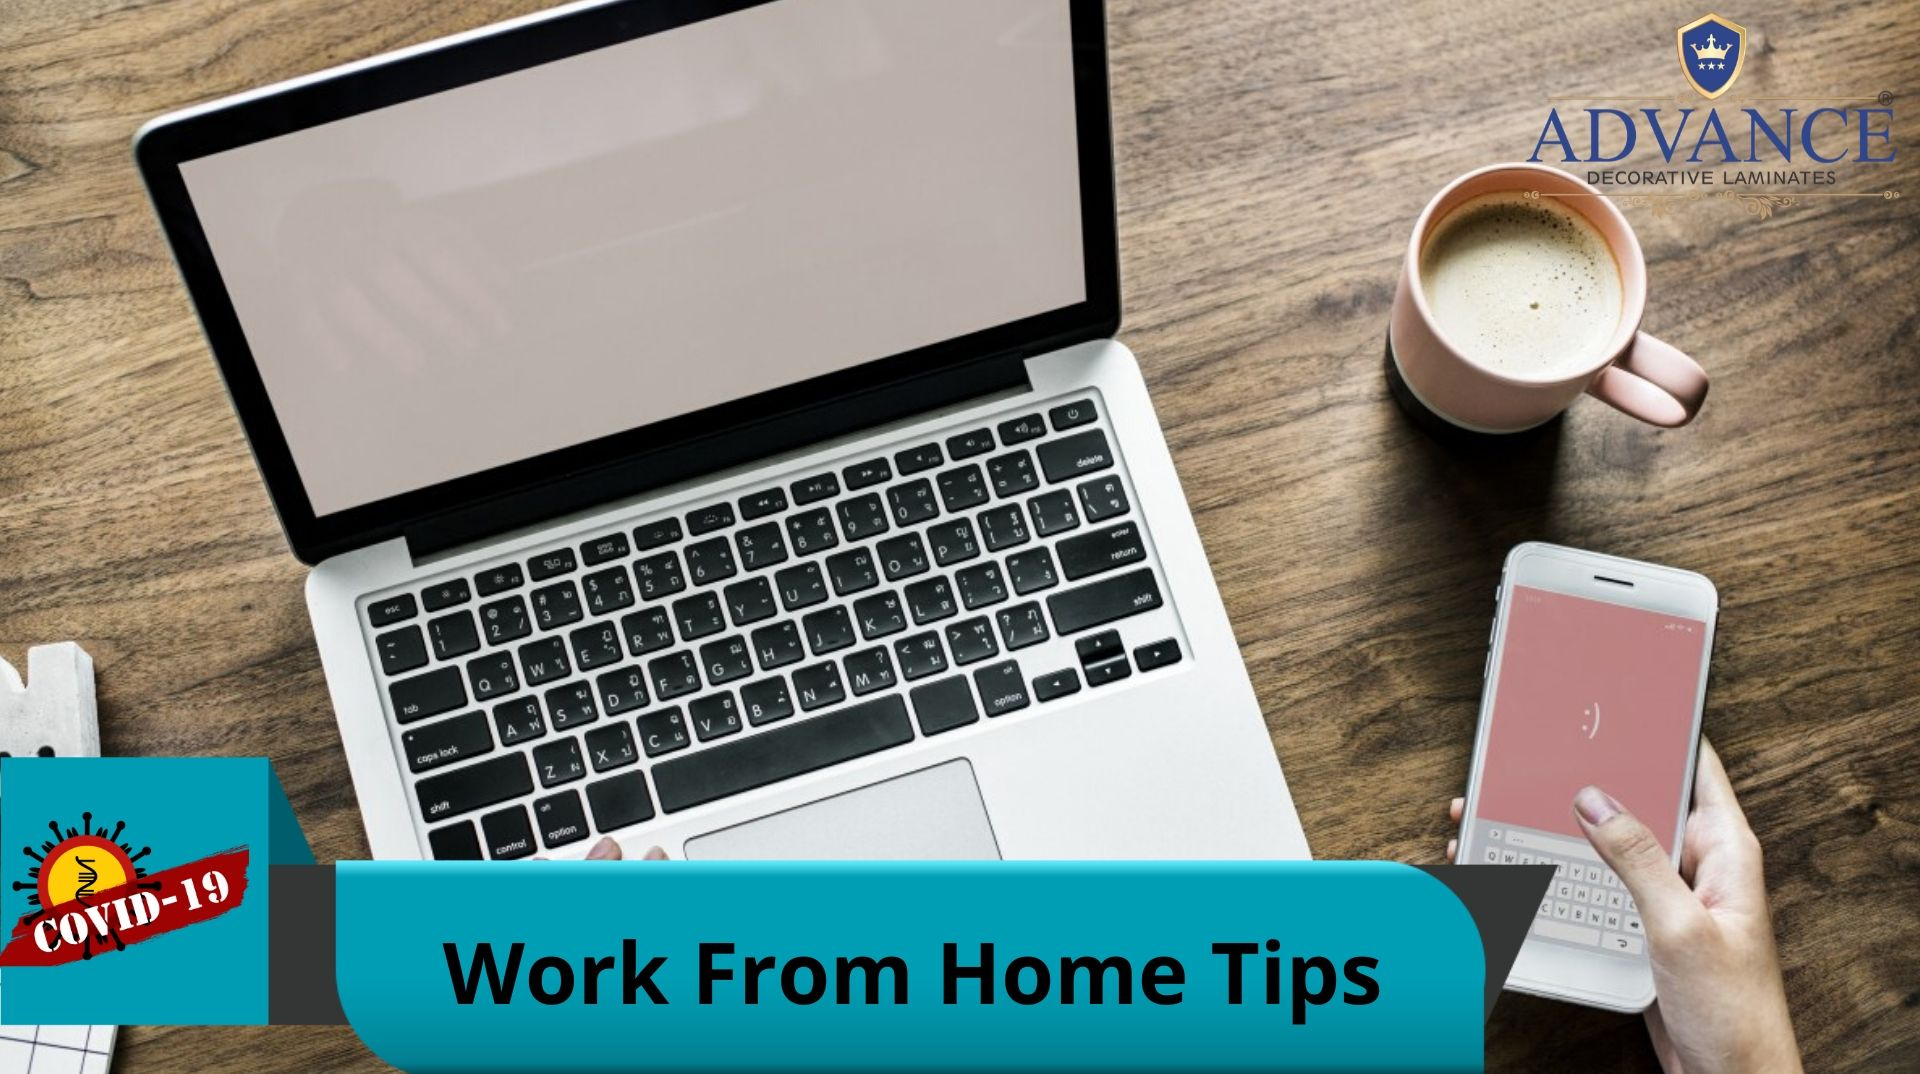 Covid 19 - Work From Home Tips